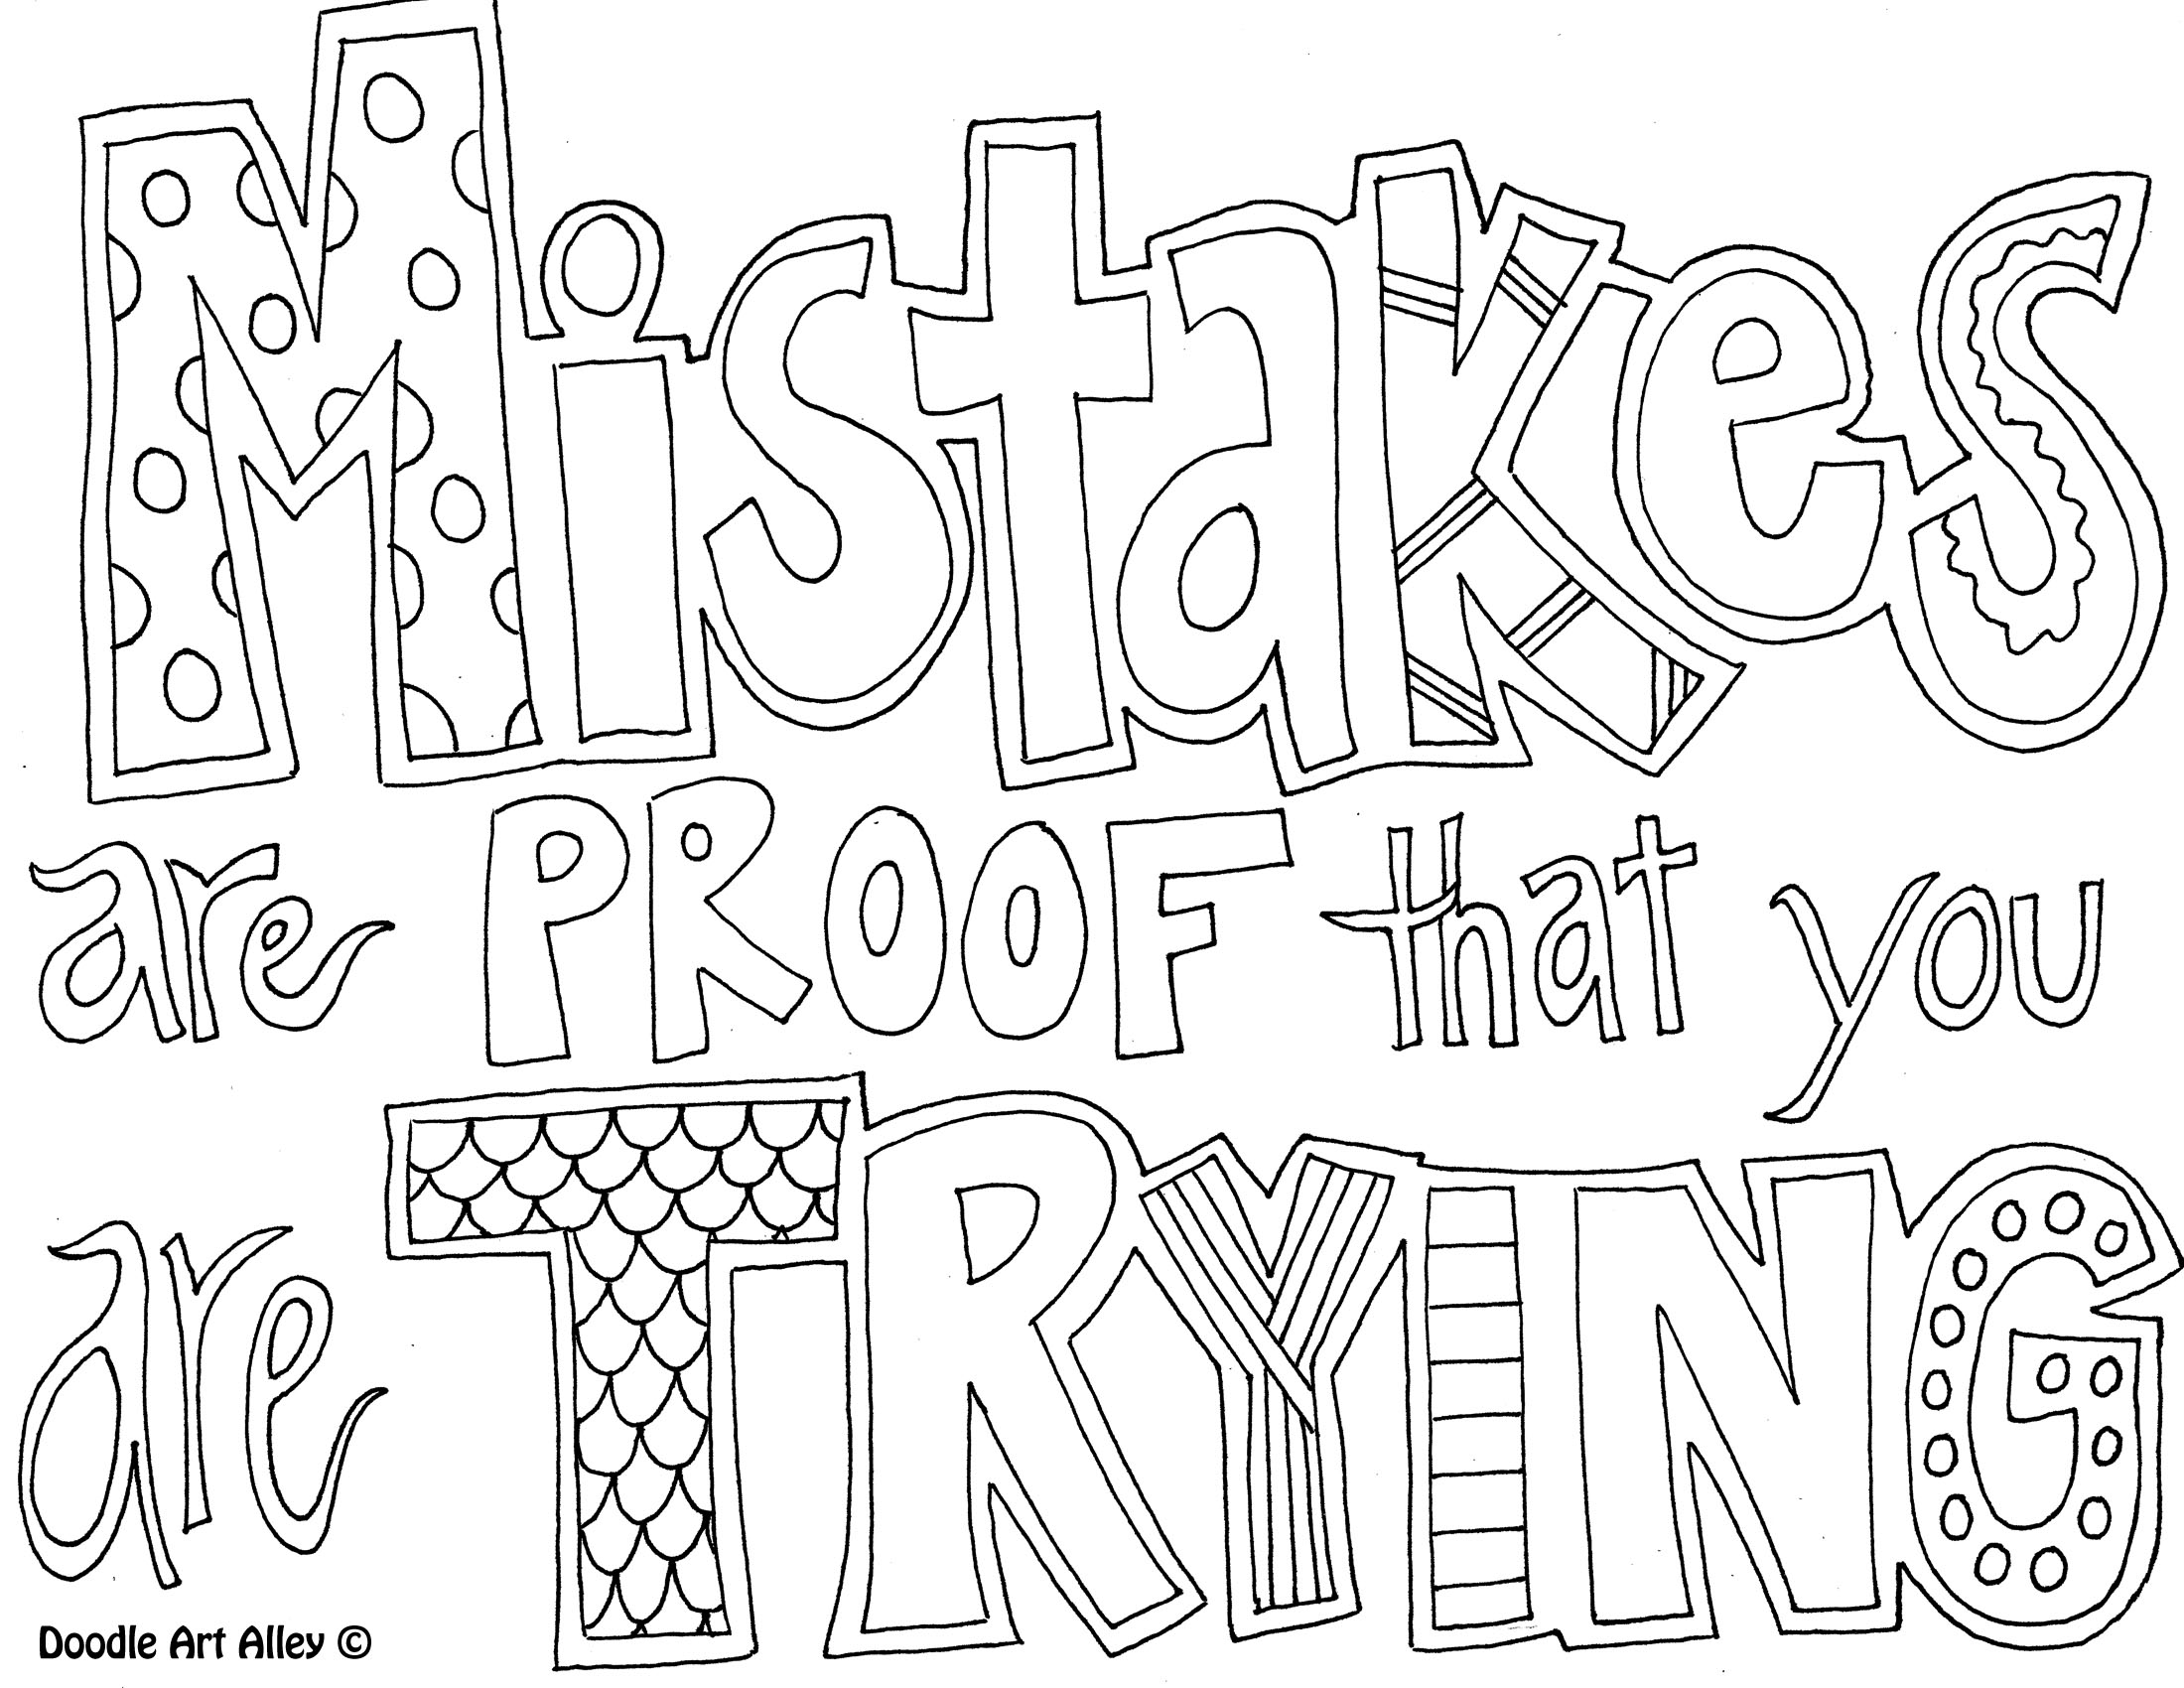 2200x1700 All Quotes Coloring Pages And Quote Studynow Me Within